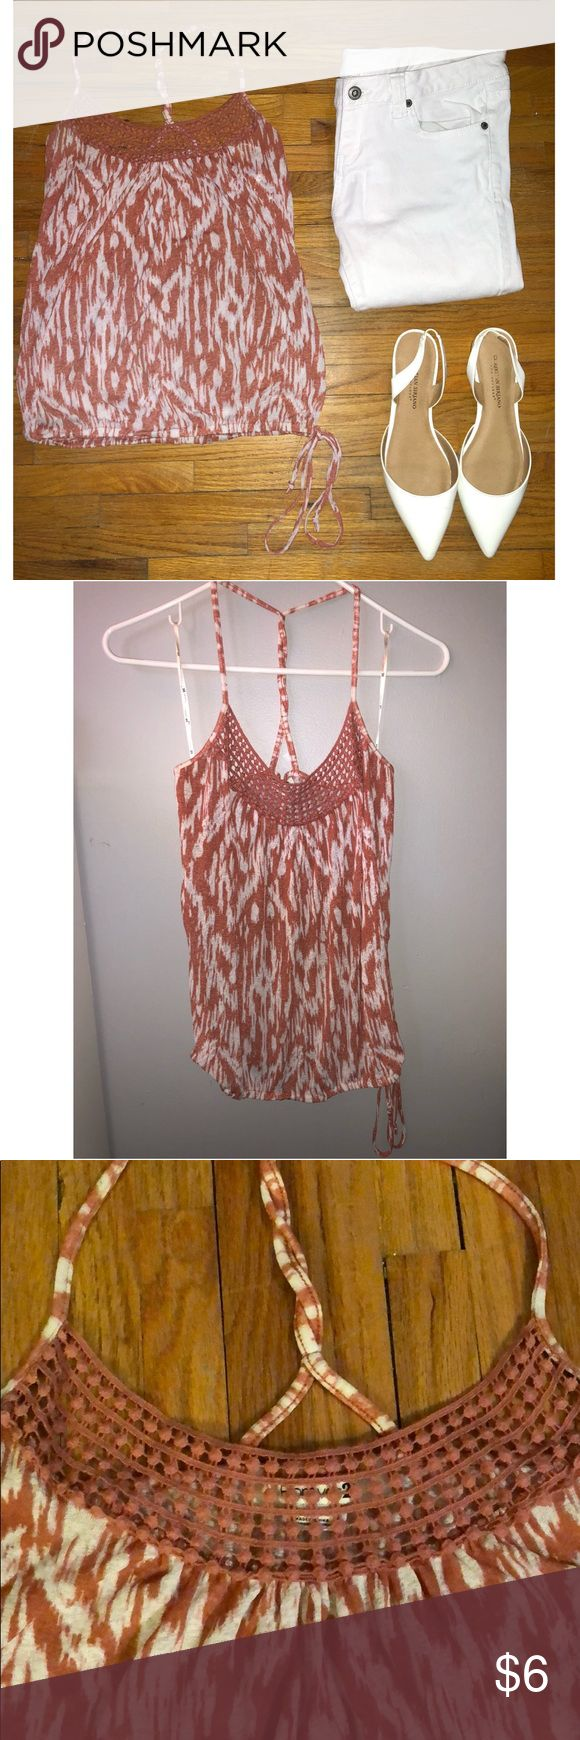 Spaghetti strap Multi-colored spaghetti strap shirt with elastic waste-line, braided cross-back, and lace-like across the chest - worn but good condition, small pull off of elastic as pictured Forever 21 Tops Tank Tops